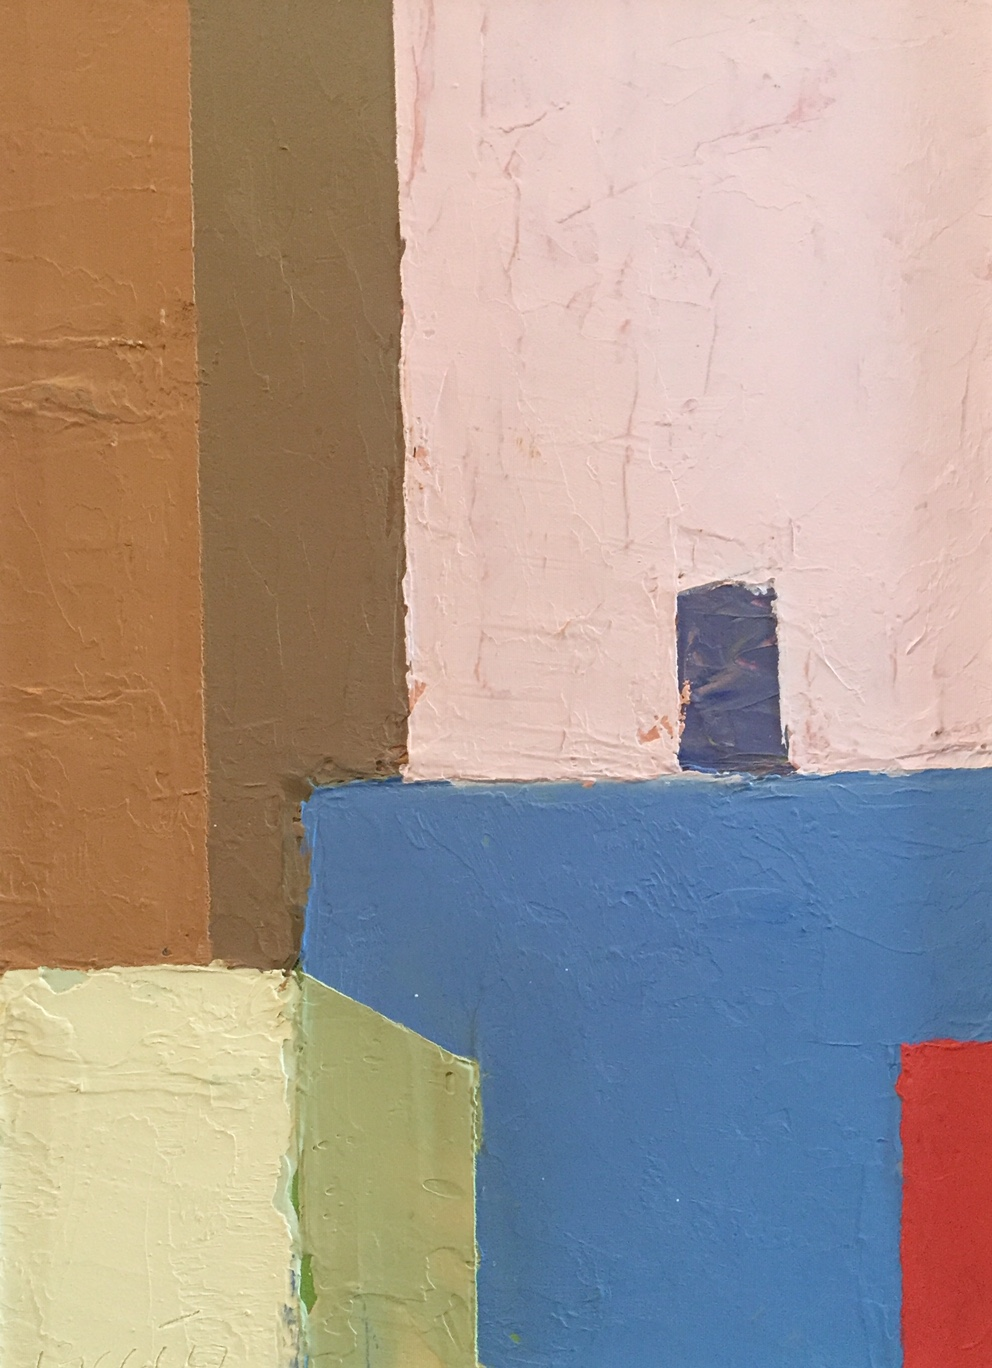 Architectural Series #6 by Kathryn Bevier